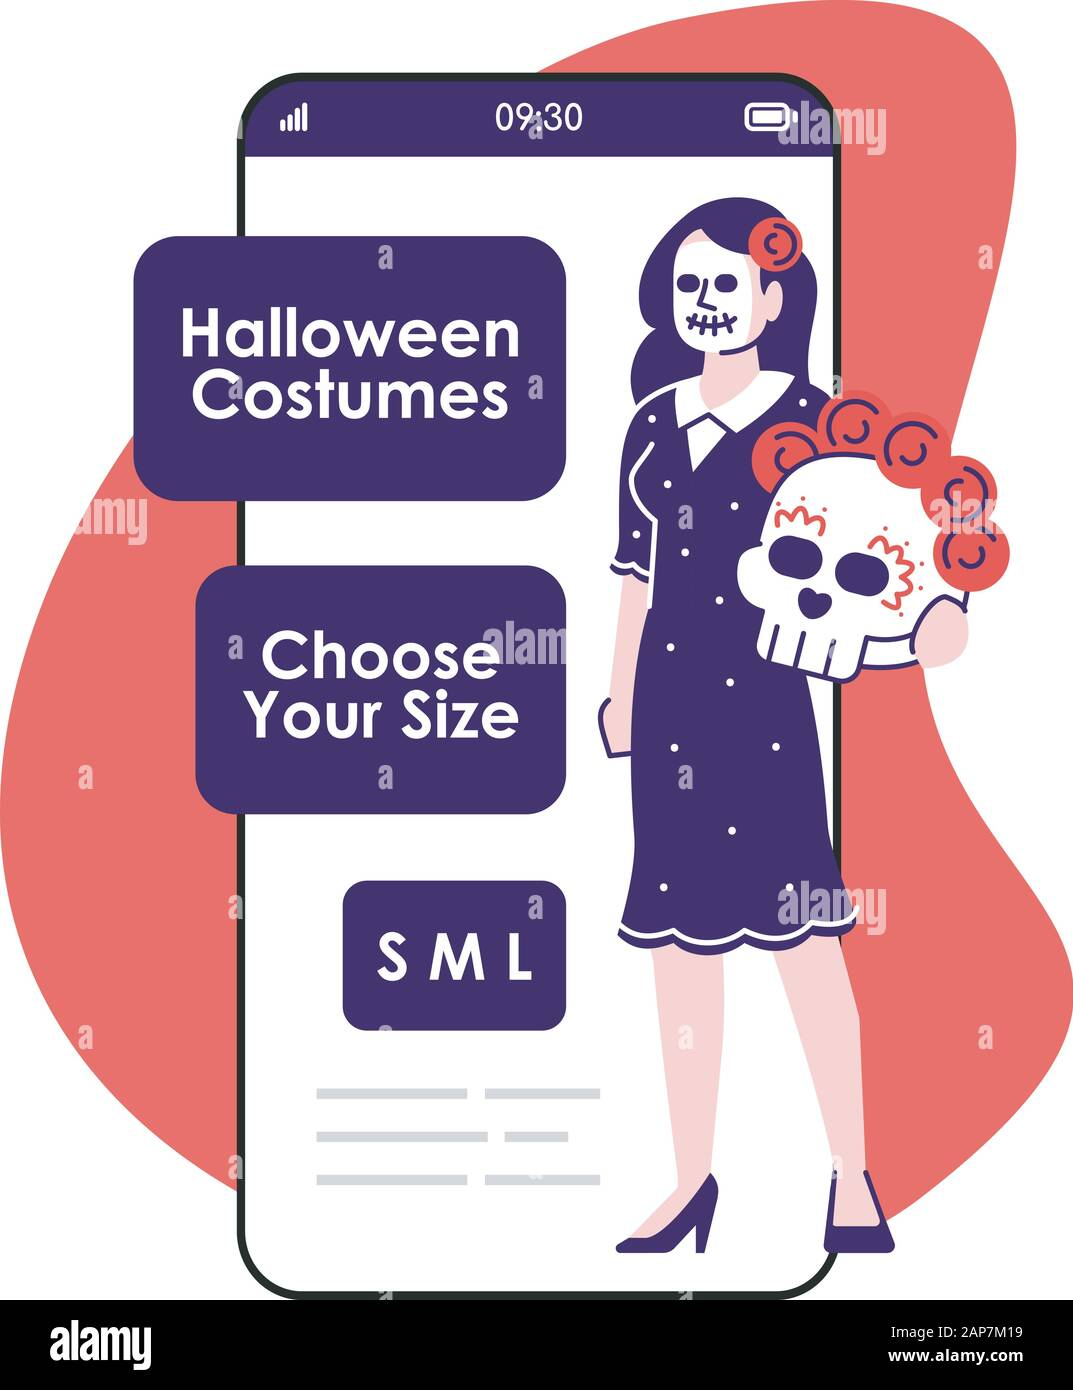 Halloween Costumes Smartphone App Screen Mobile Phone Displays With Cartoon Characters Design Mockup Skeleton Suit Clothing For Rent Online Store Stock Vector Art Illustration Vector Image 340688805 Alamy